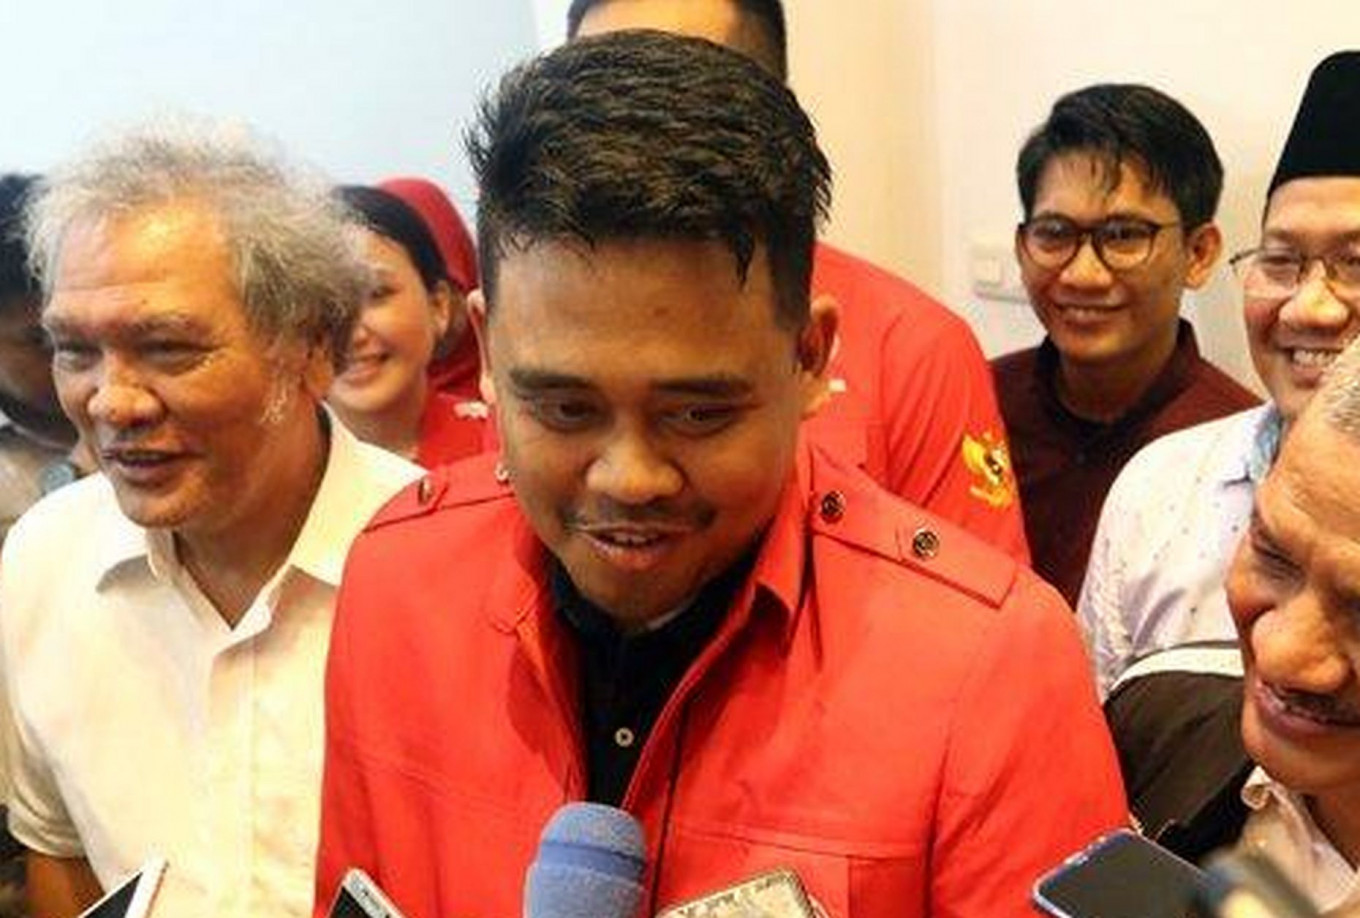 PDI-P fires members who refuse to back Jokowi's son-in-law for Medan mayor